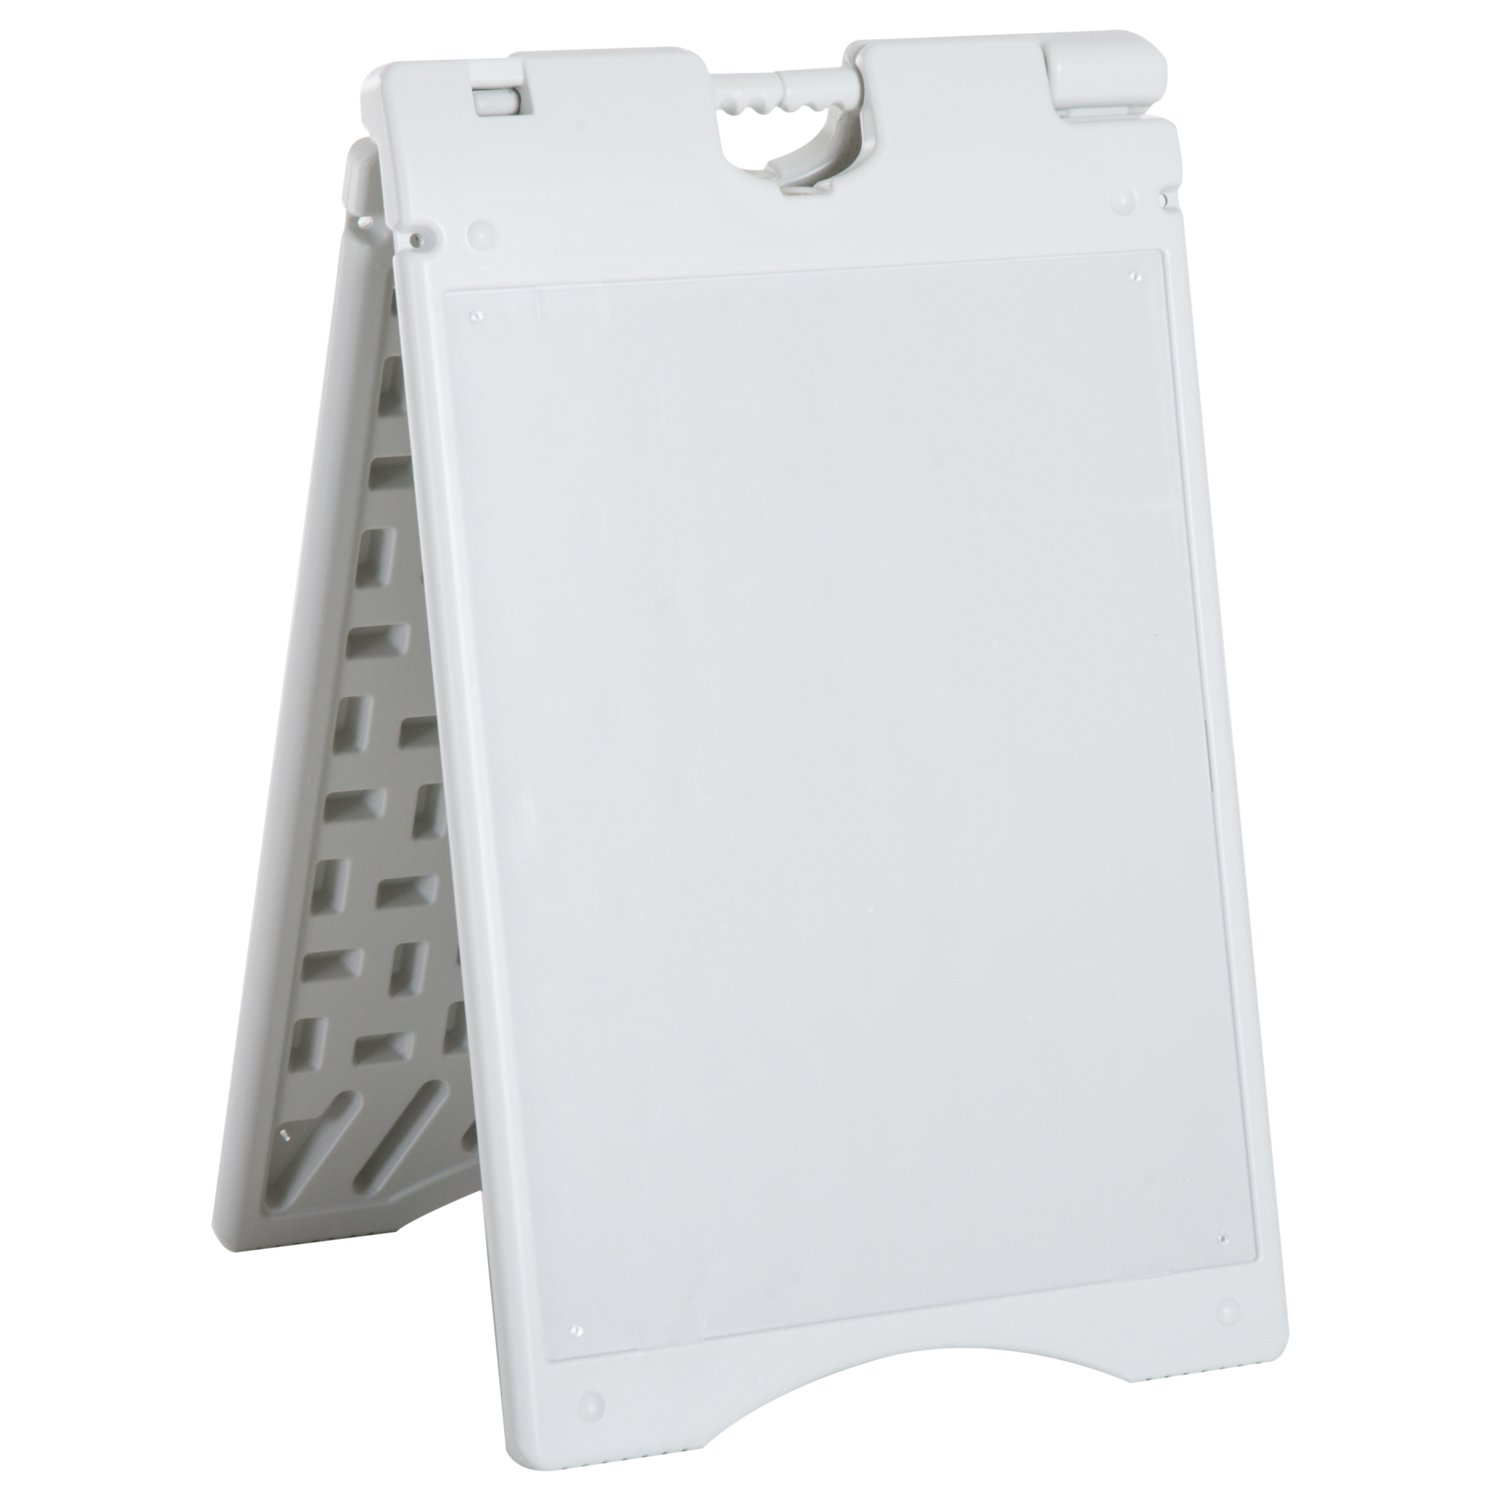 Vinsetto 36'' x 24 Plastic Folding A-Frame Sandwich Board Sidewalk Sign by Vinsetto